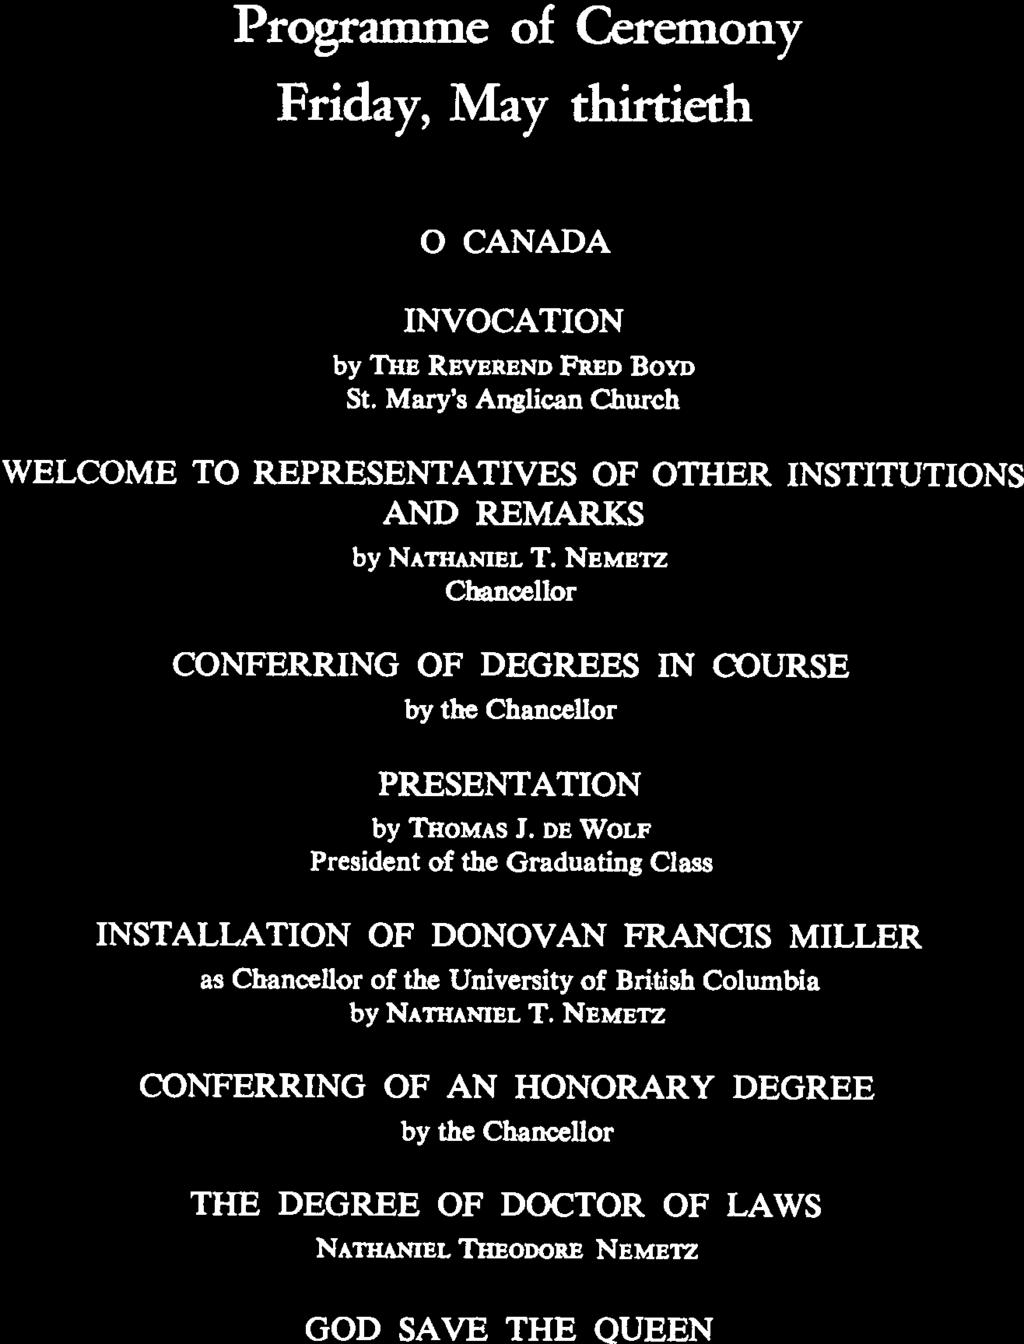 Programme of Ceremony Friday, May thirtieth O CANADA INVOCATION by THE REVEREND FRED BOYD St. Mary s Anglican Church WELCOME TO REPRESENTATIVES OF OTHER INSTITUTIONS AND REMARKS by NATHANIEL T.